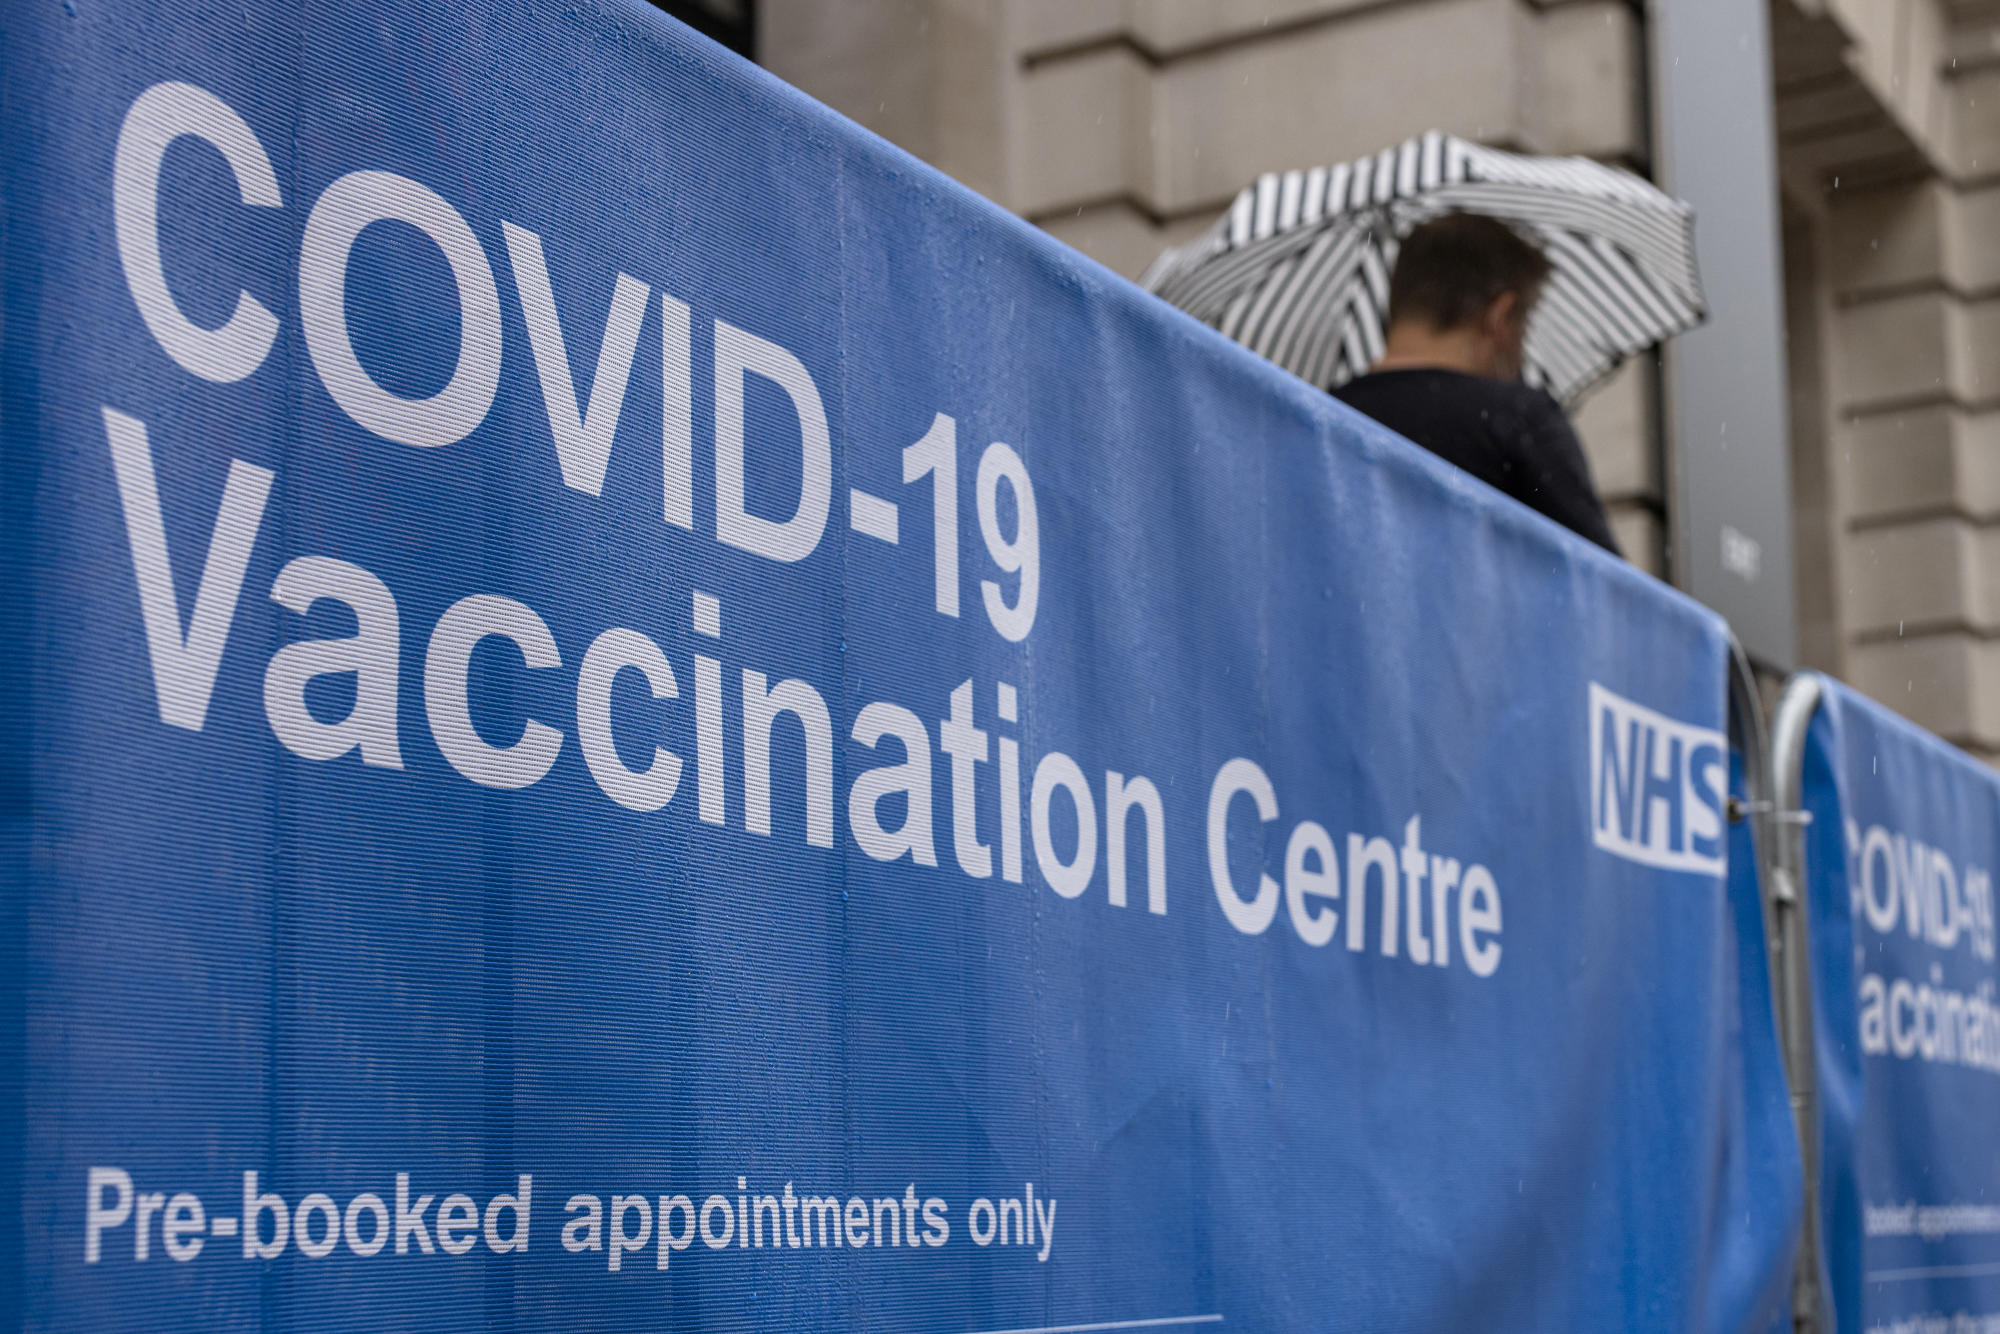 Britain being 'held to ransom' by people refusing to take vaccine, says top Tory MP